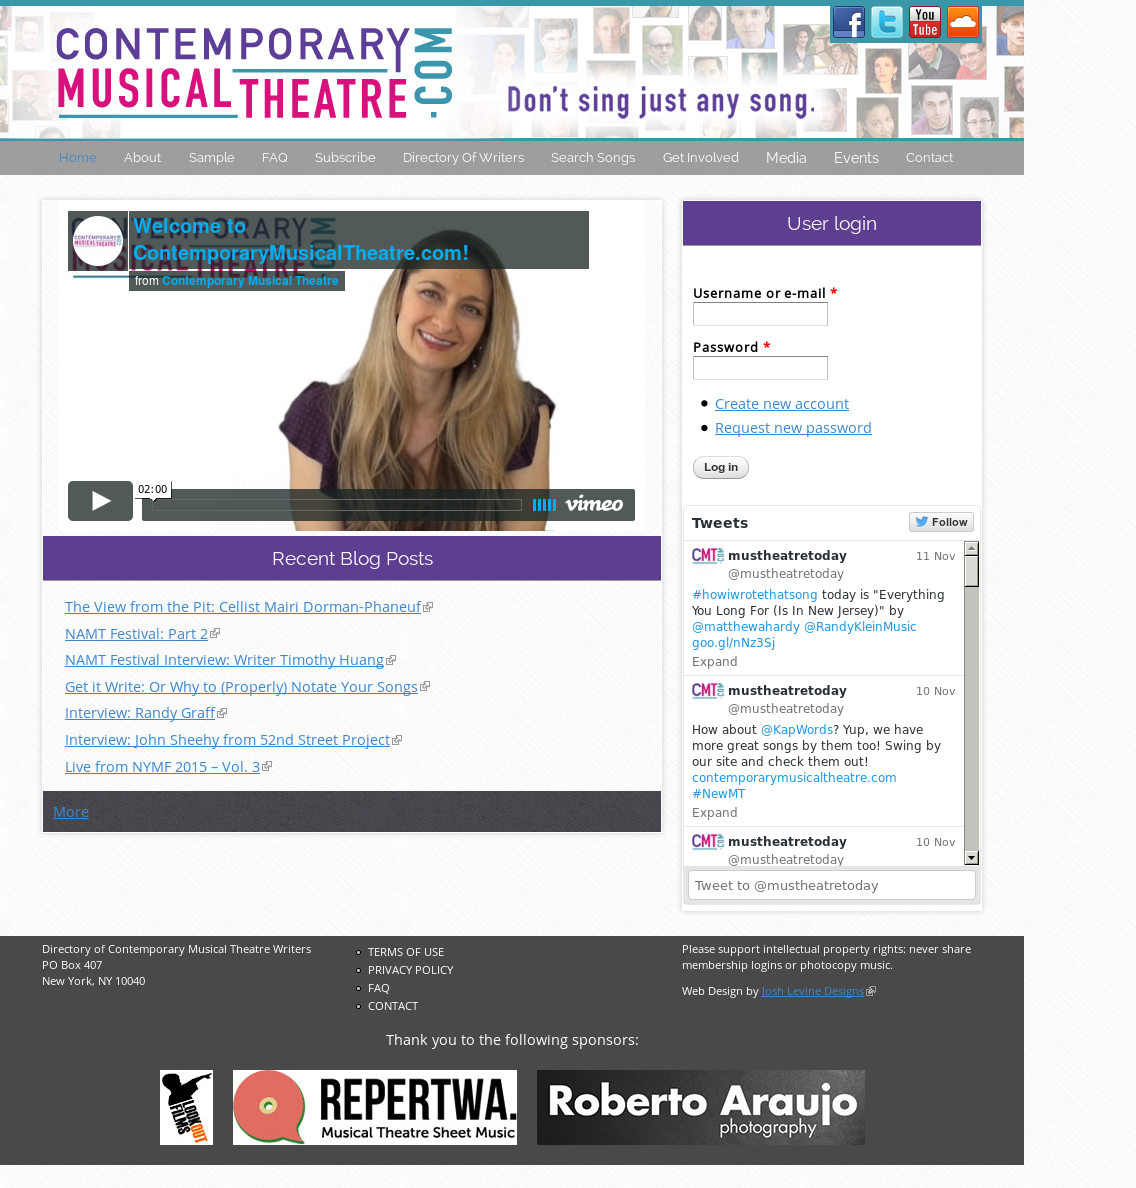 Contemporary Musical Theatre Competitors, Revenue and